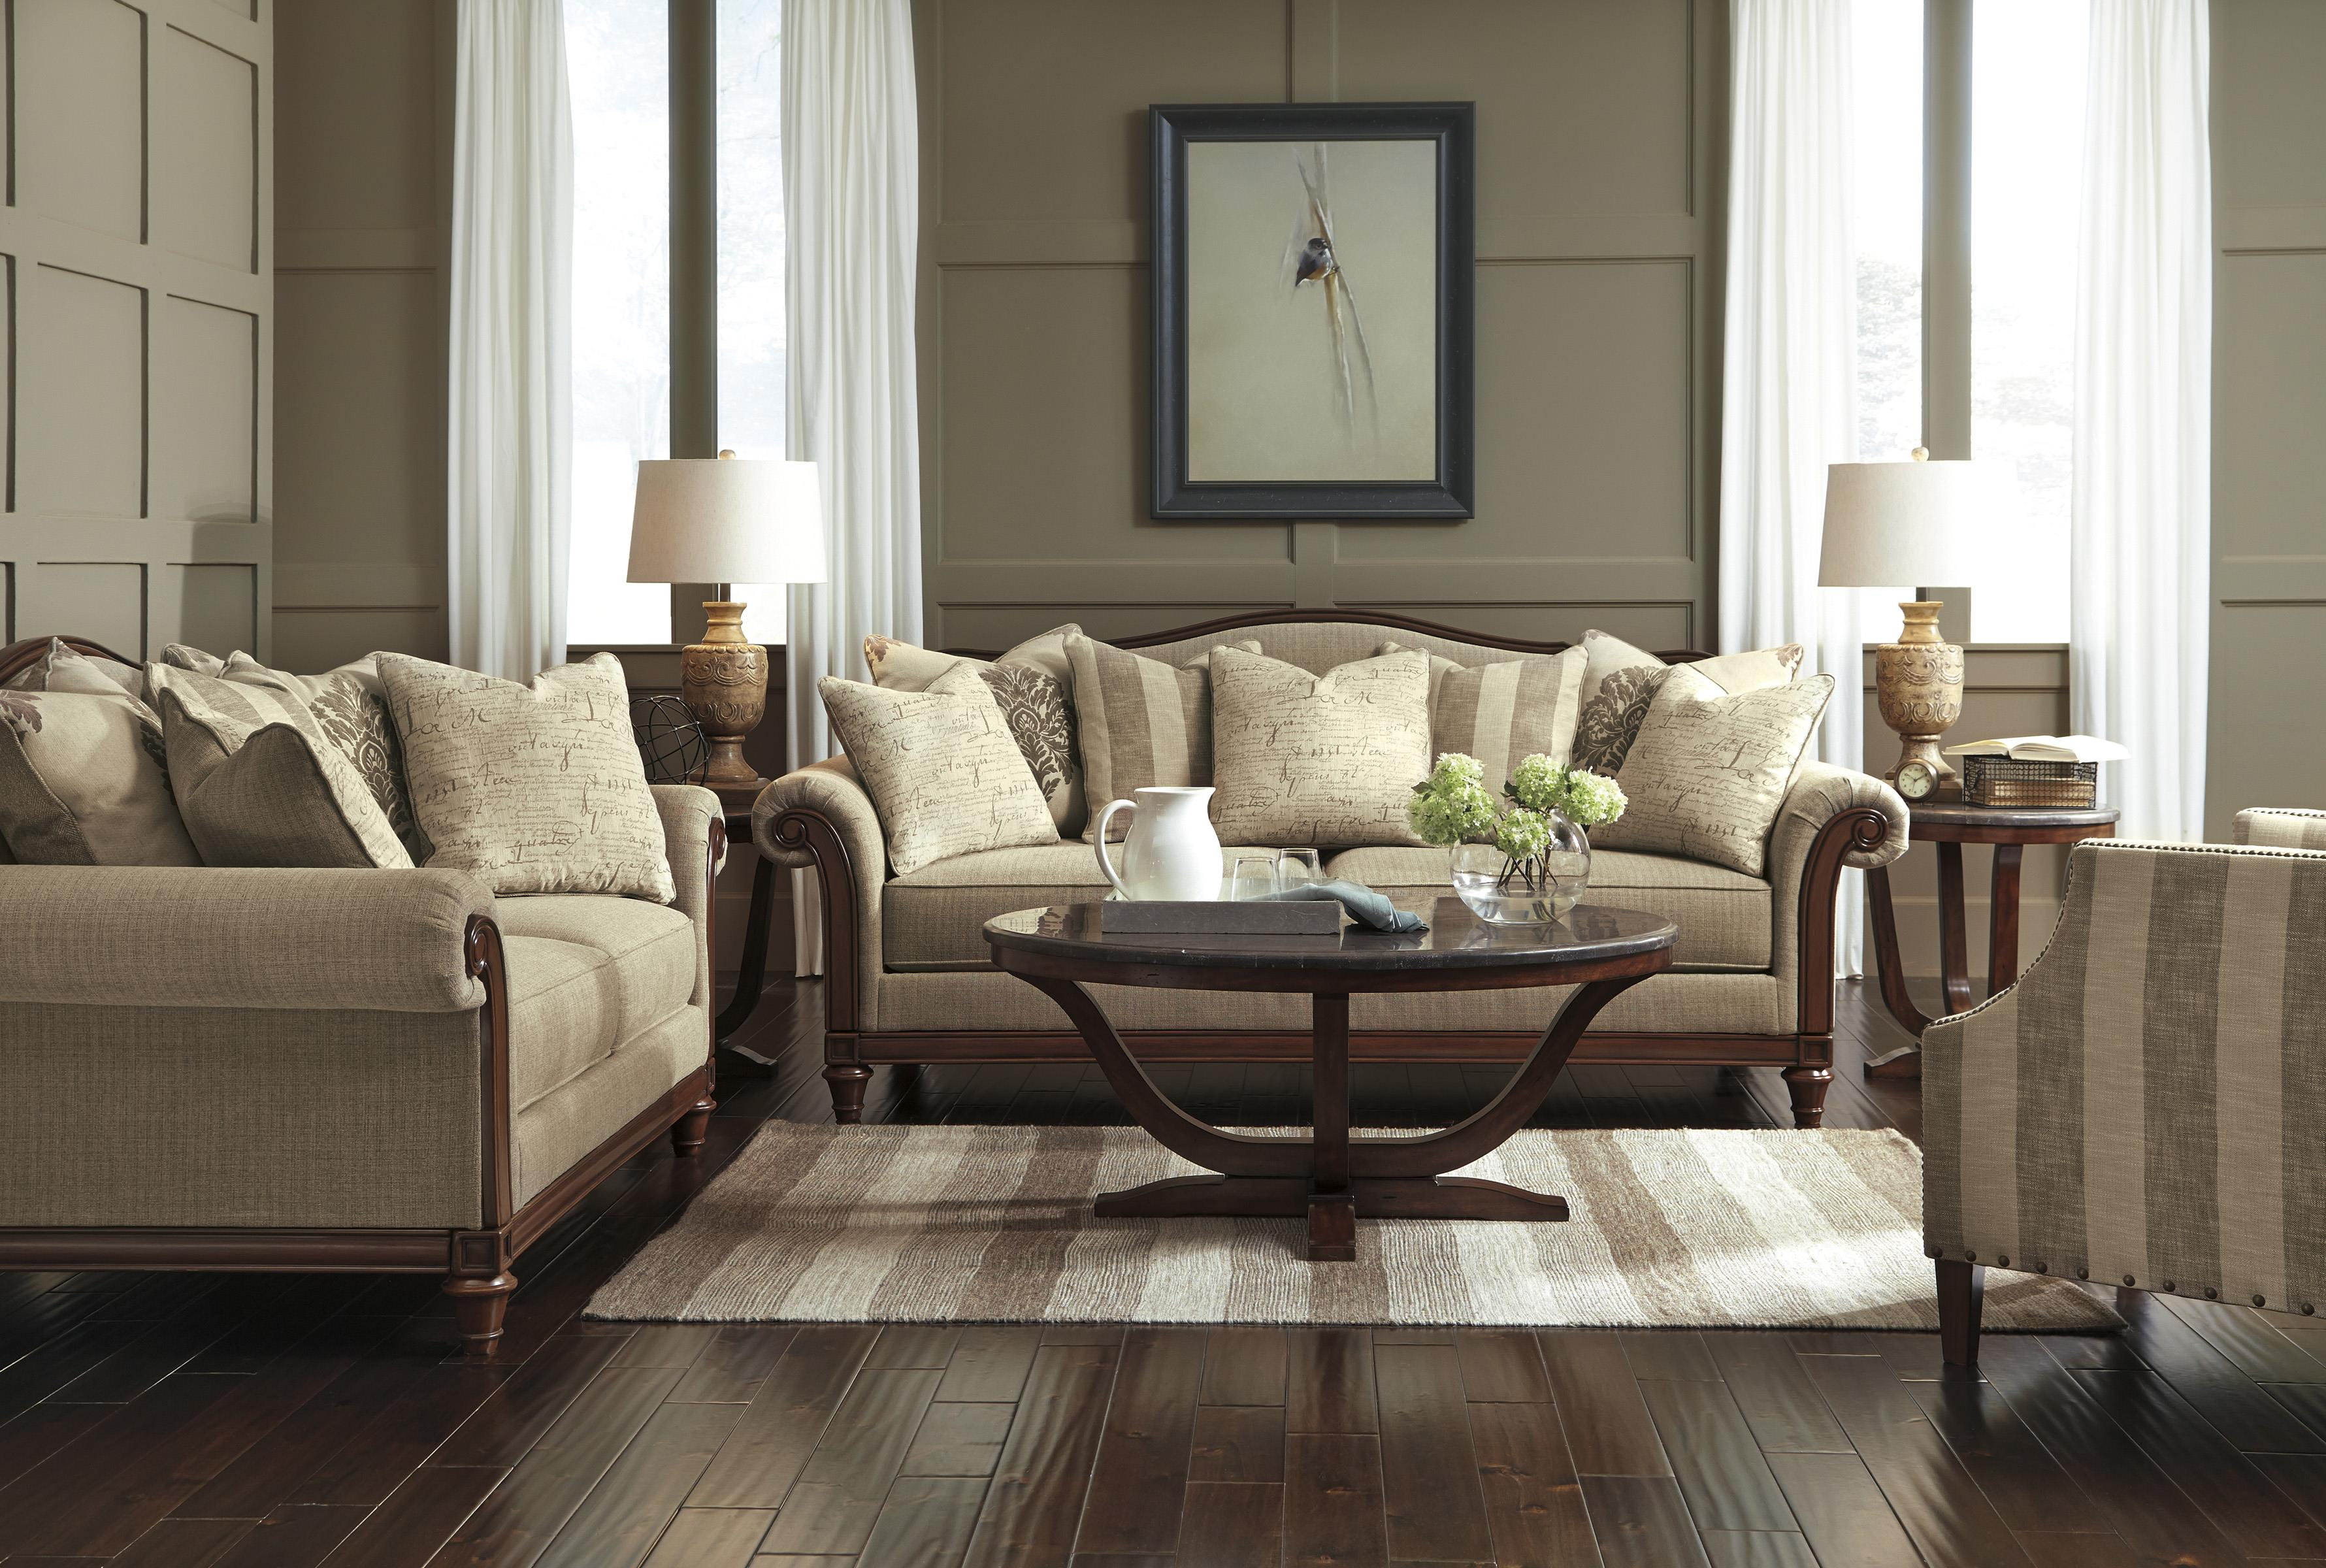 Transitional Sofa with Camel Back and Showood Trim by